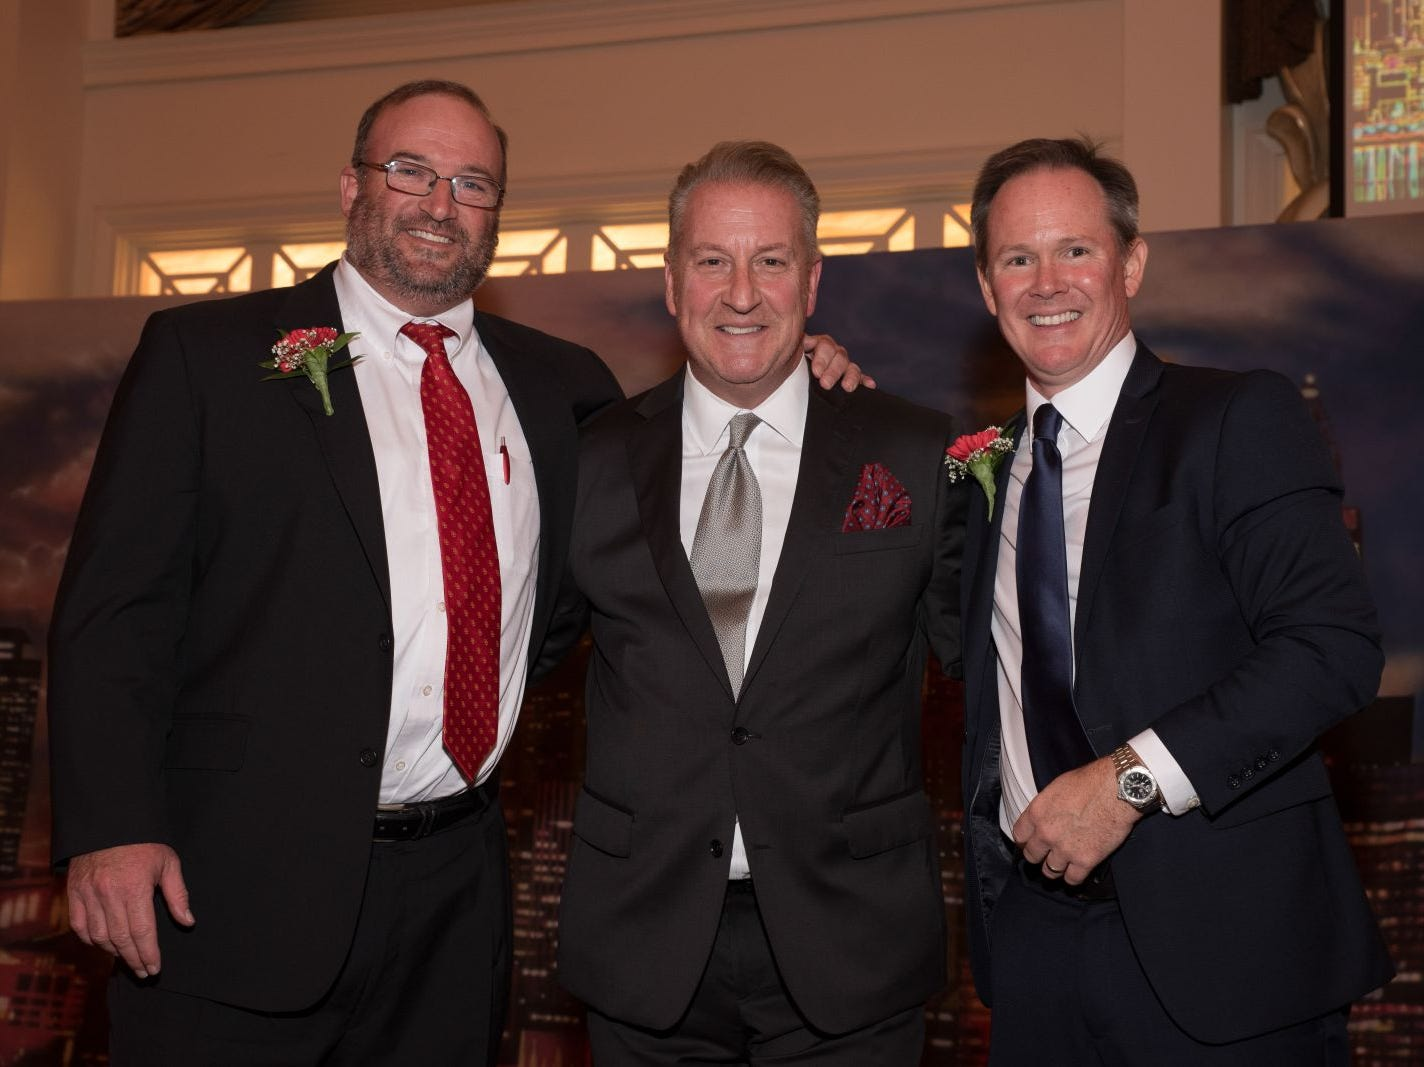 Timothy McElhinney, Principal with Sandy Cerami, Emcee and Dr. Brian Mahoney, President. Bergen Catholic High School celebrates their 2018 Crusader Gala at The Venetian in Garfield. 11/16/2018